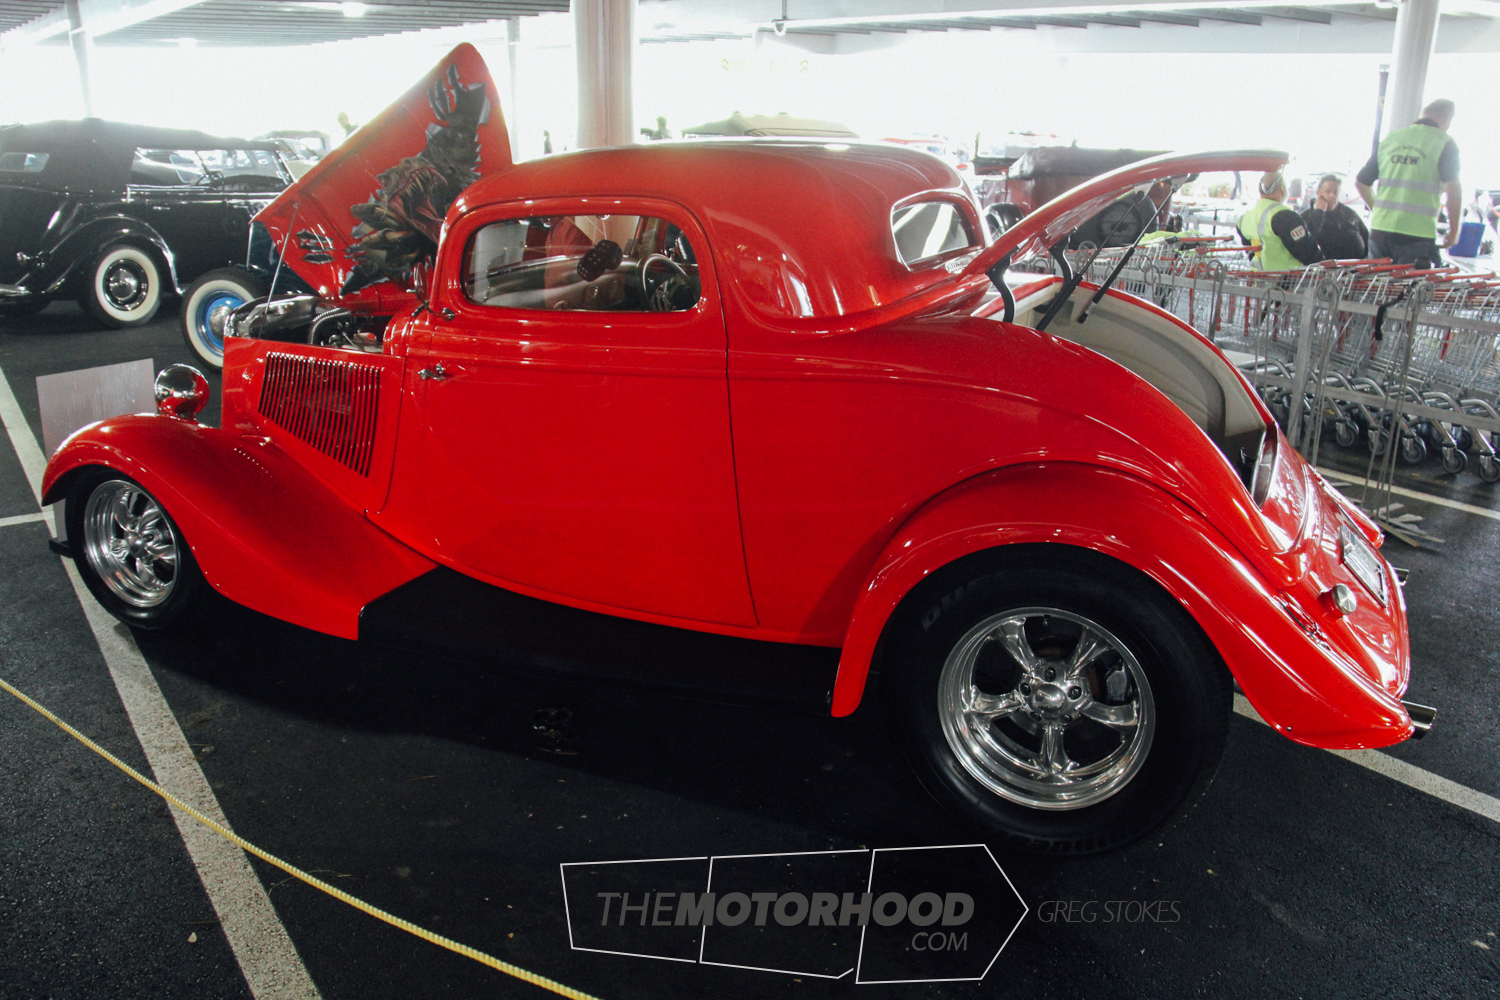 Shane and Lynda Tate's '33 Ford Coupe is a recent build by D&V Autos featuring an injected Ford engine